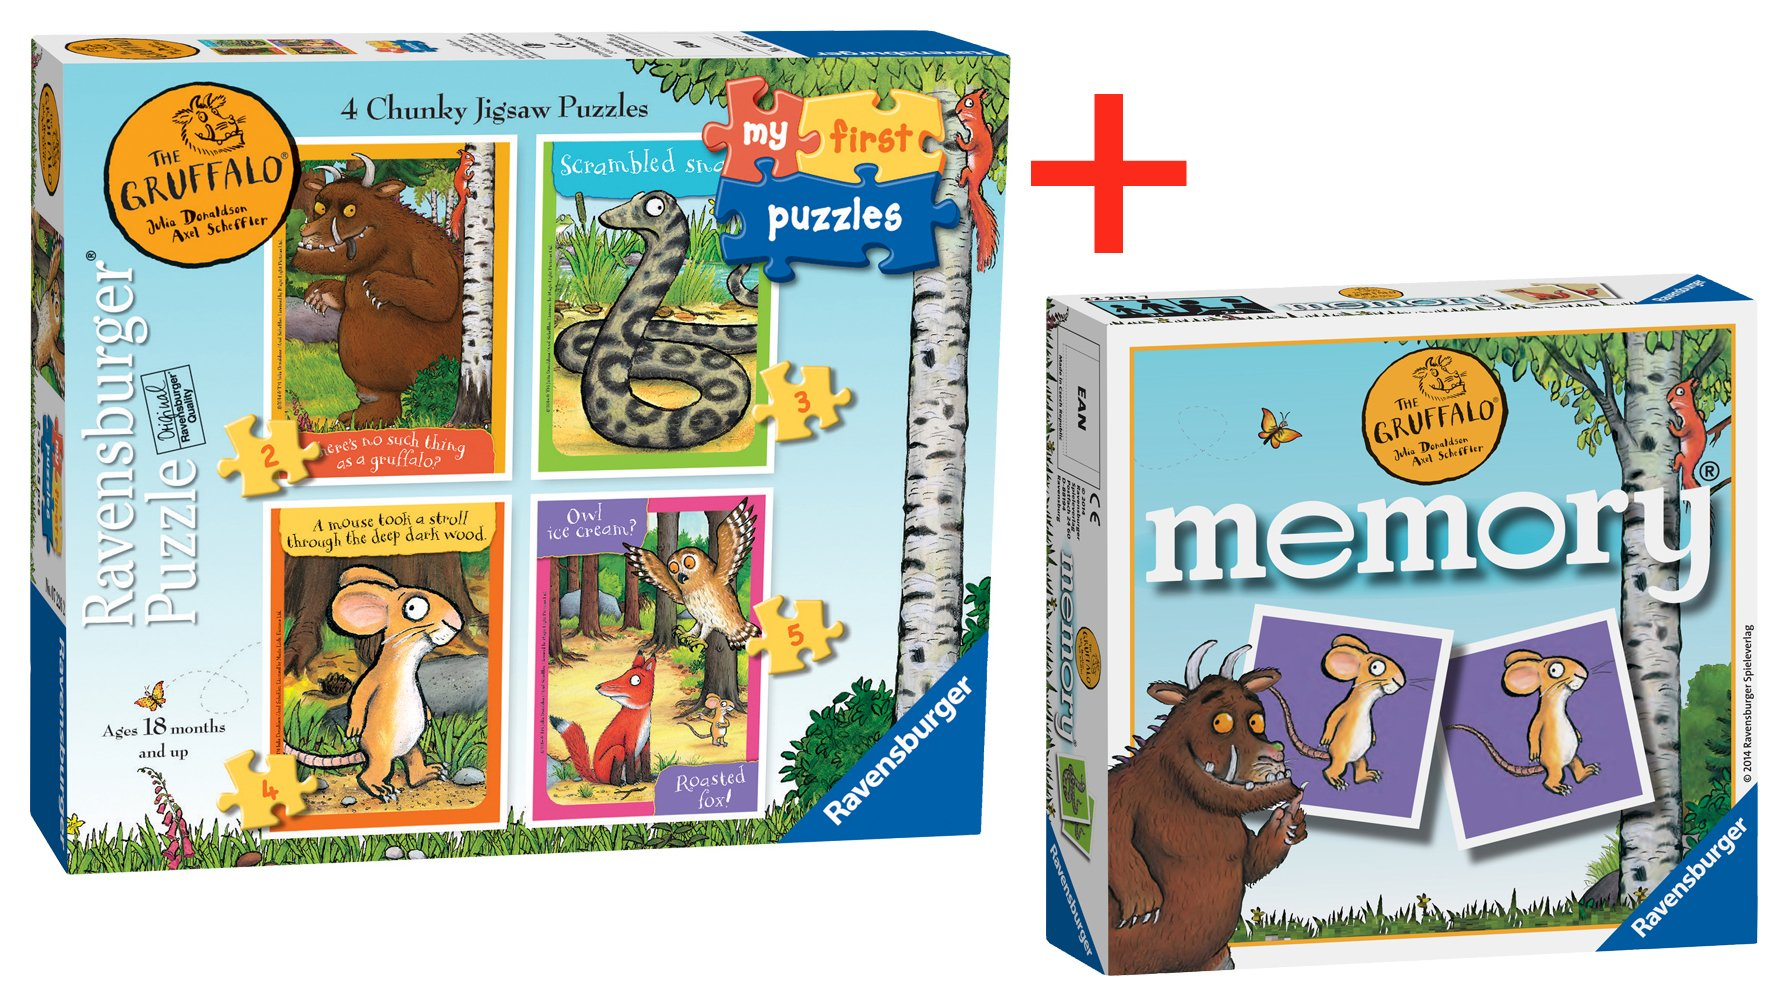 Ravensburger The Gruffalo My First Puzzle & Mini memory review